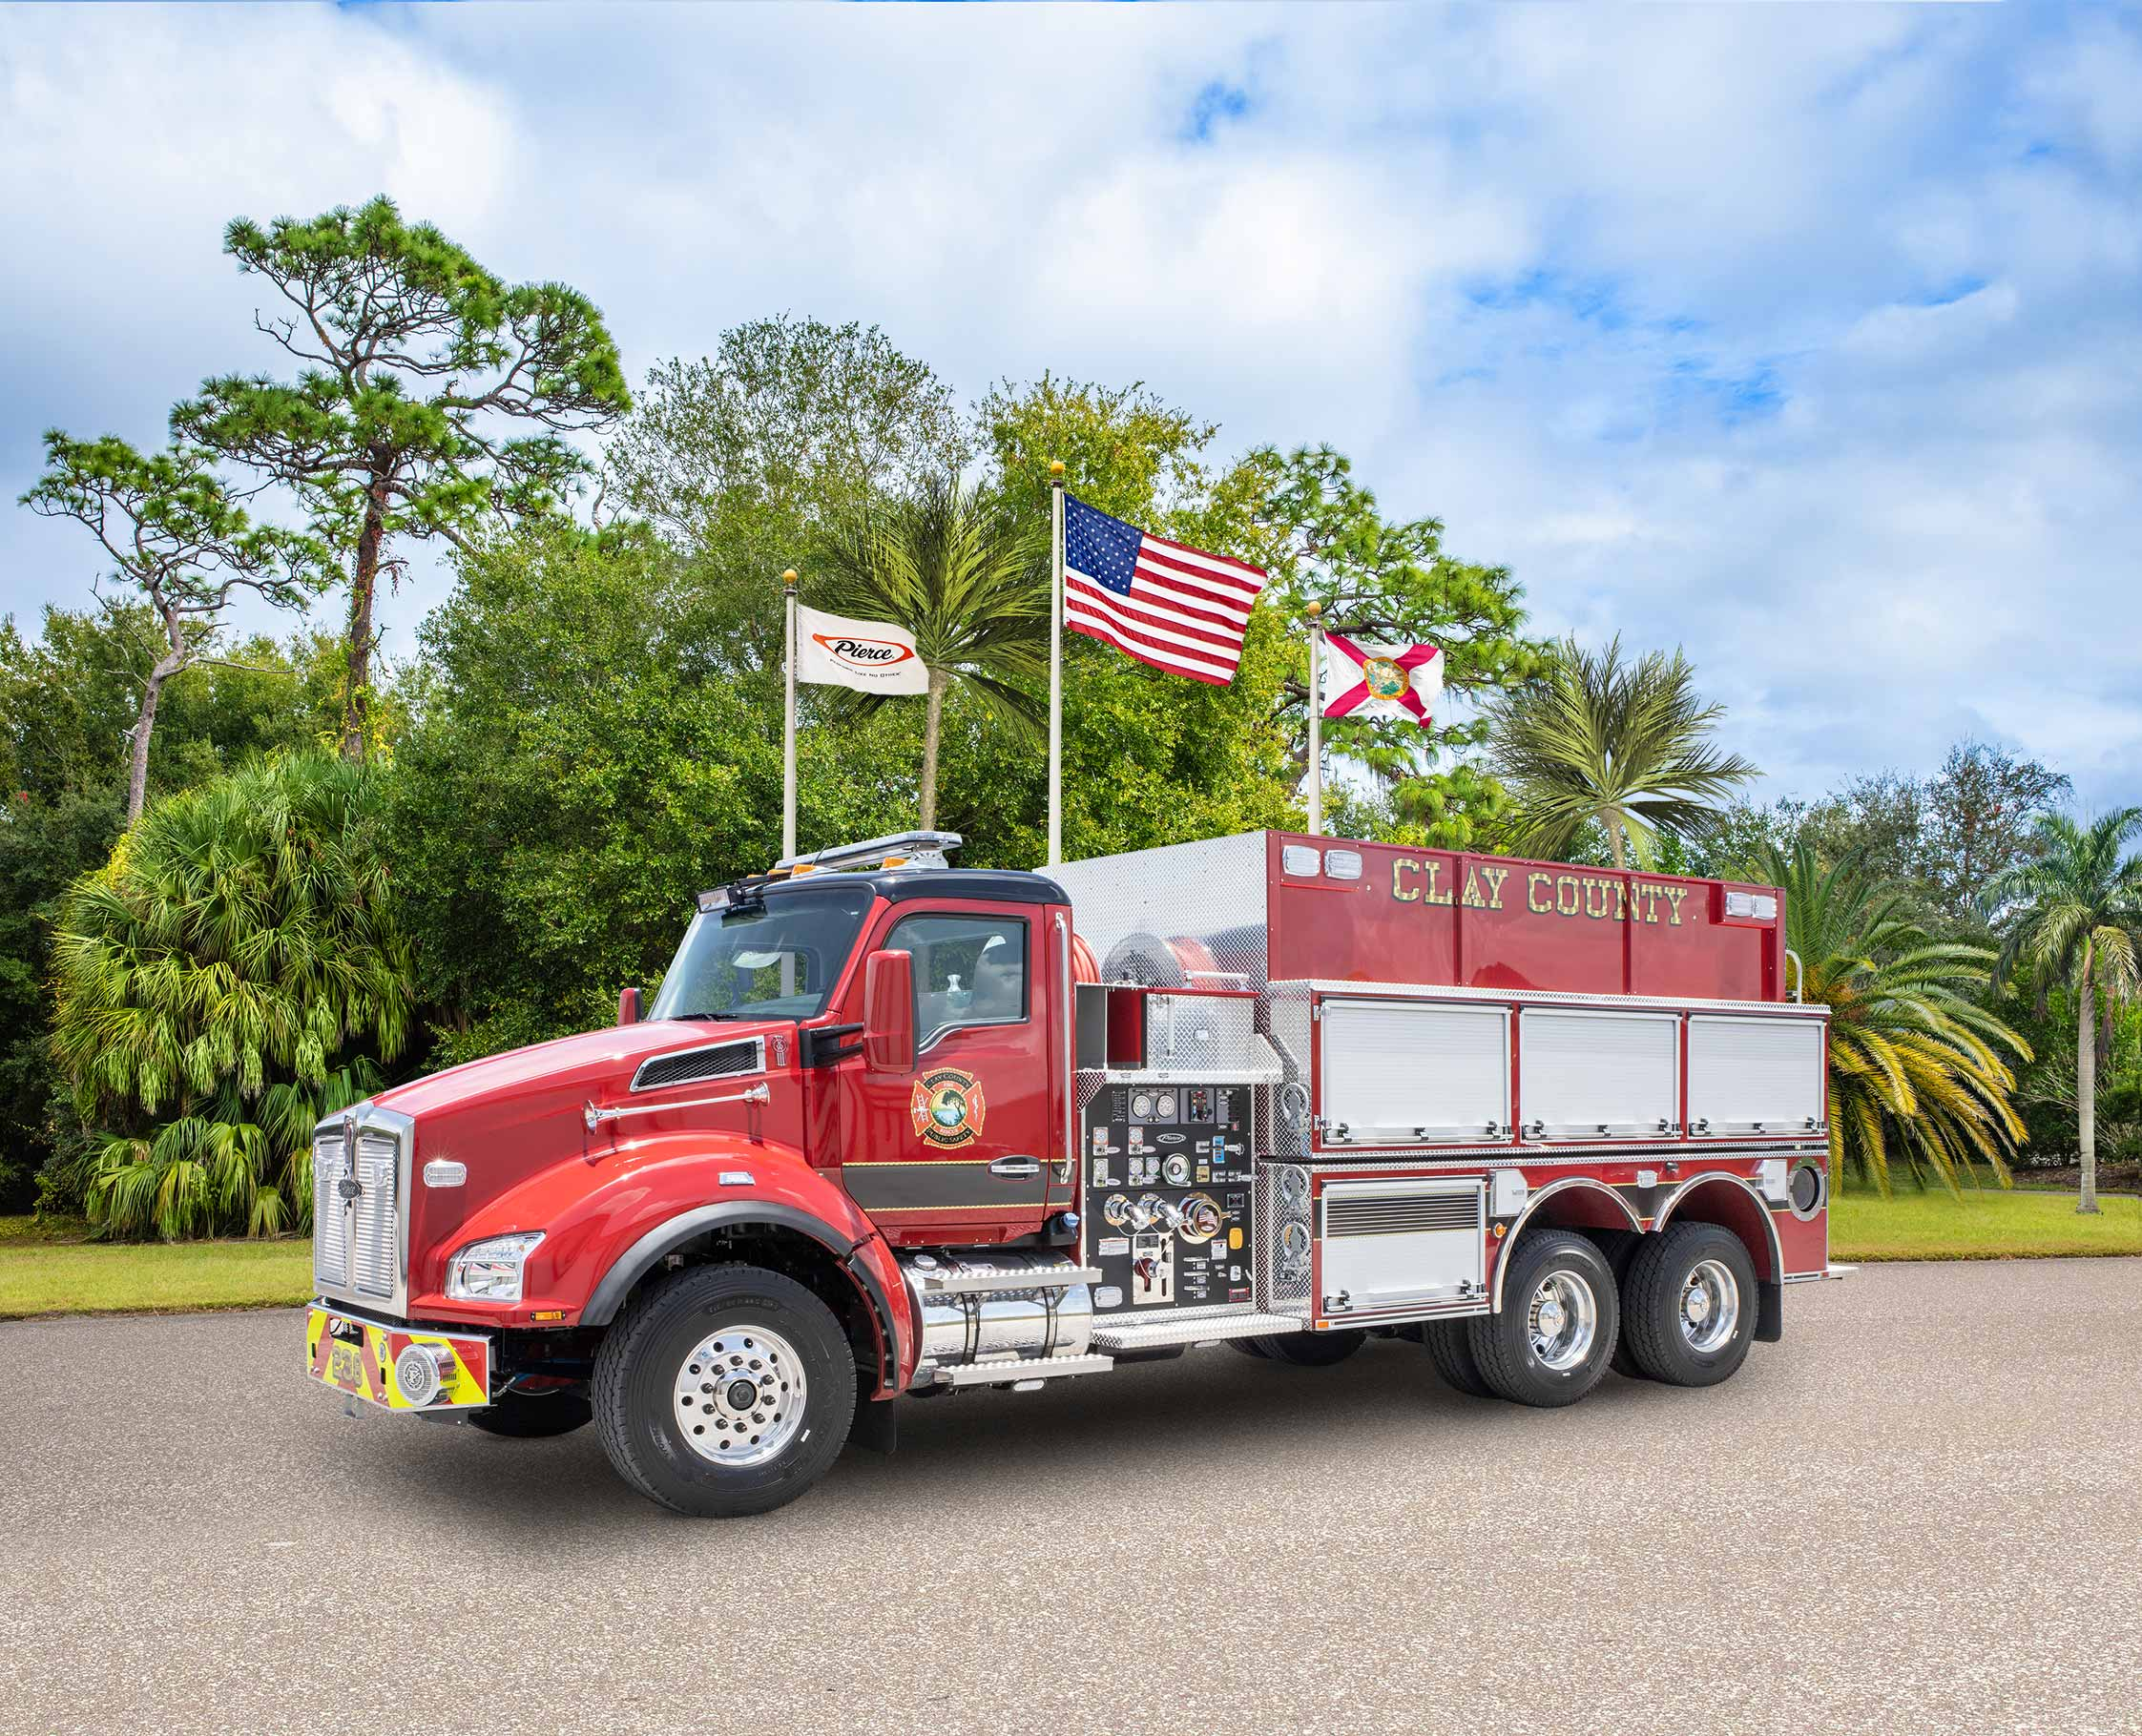 Clay County Fire Rescue - Tanker